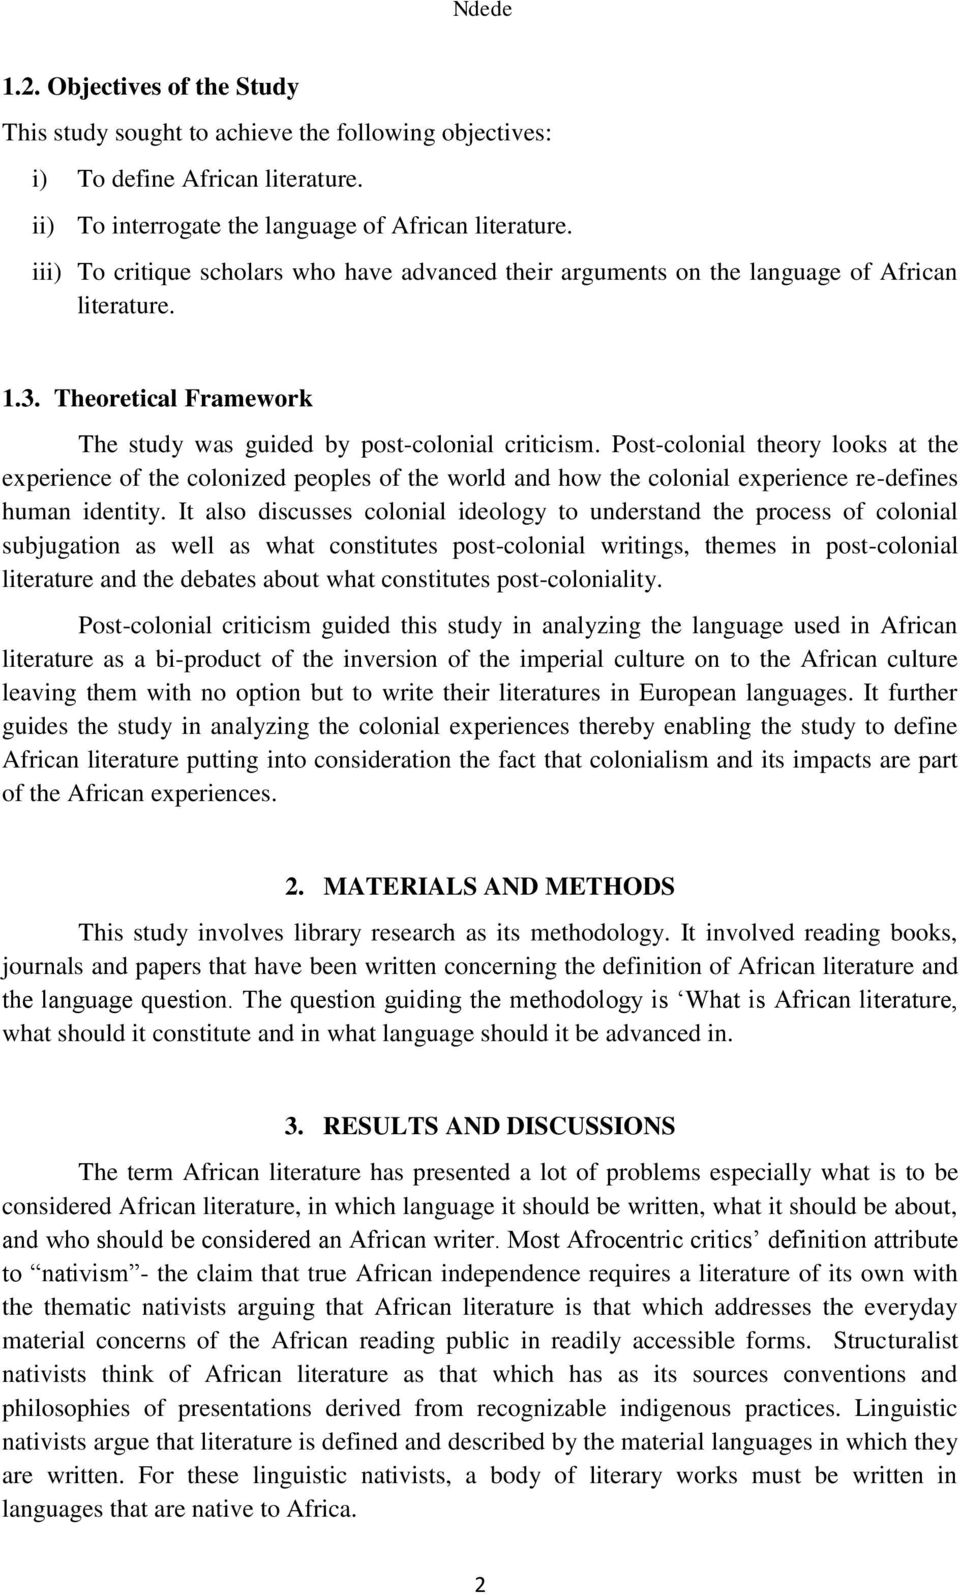 African Literature: Place, Language or Experience - PDF